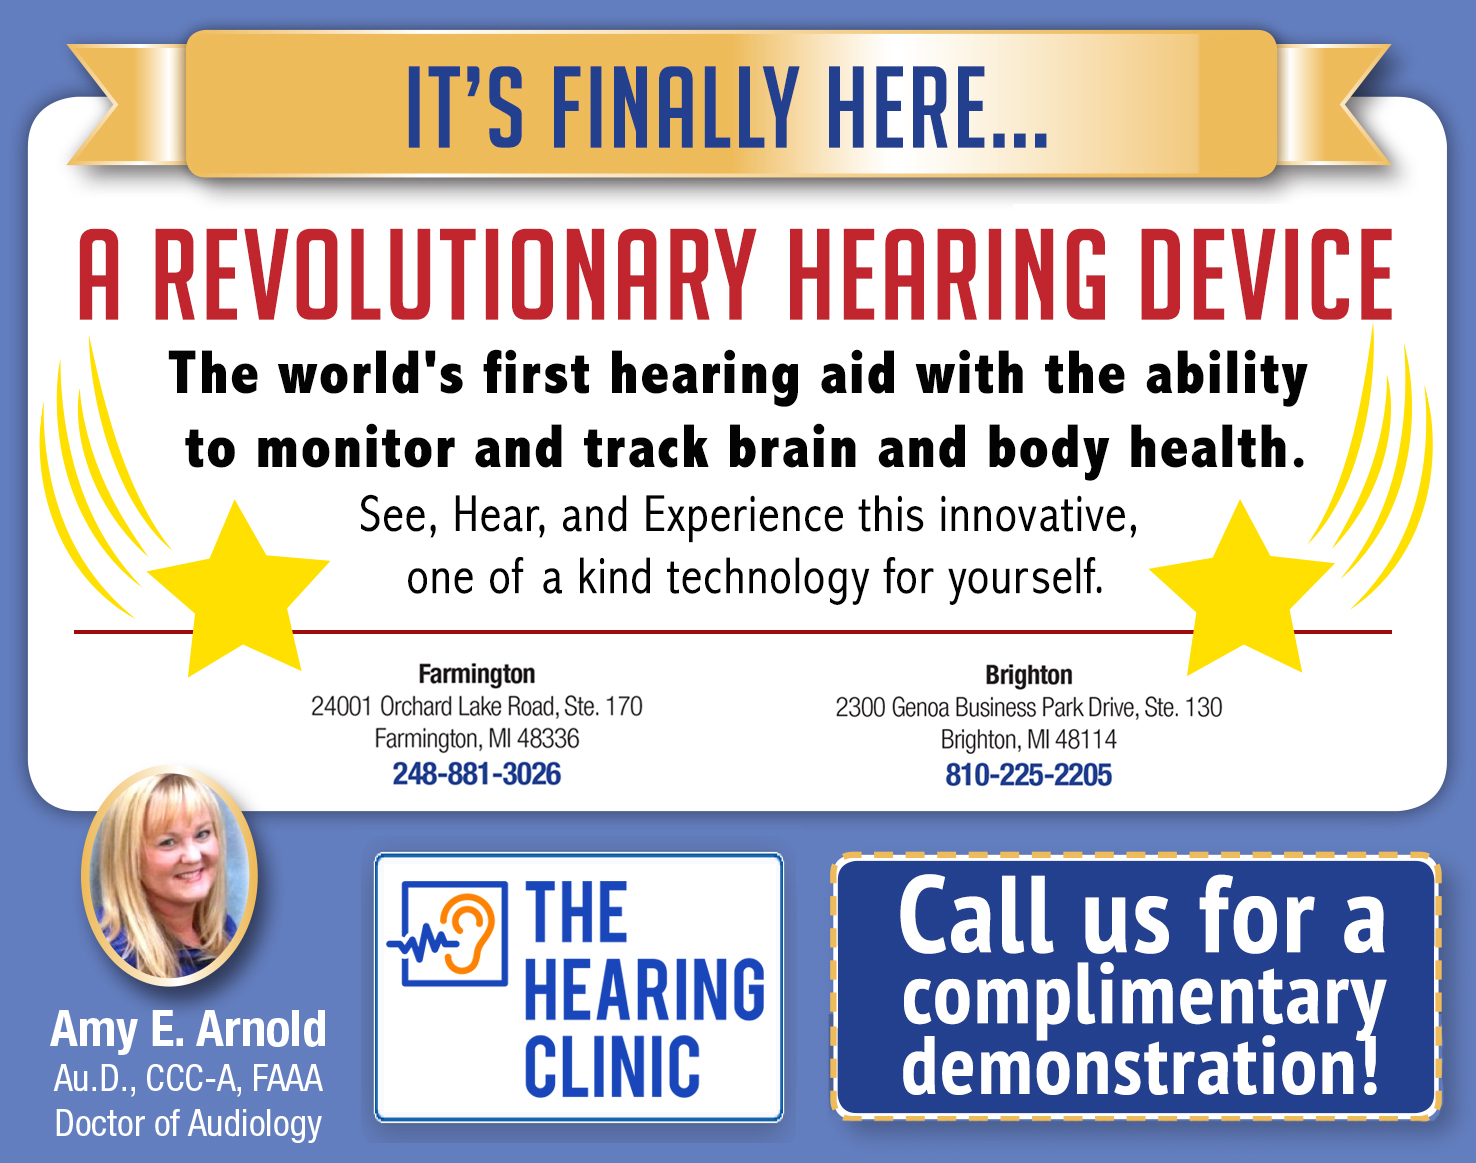 HearingClinic_Oct18.jpg